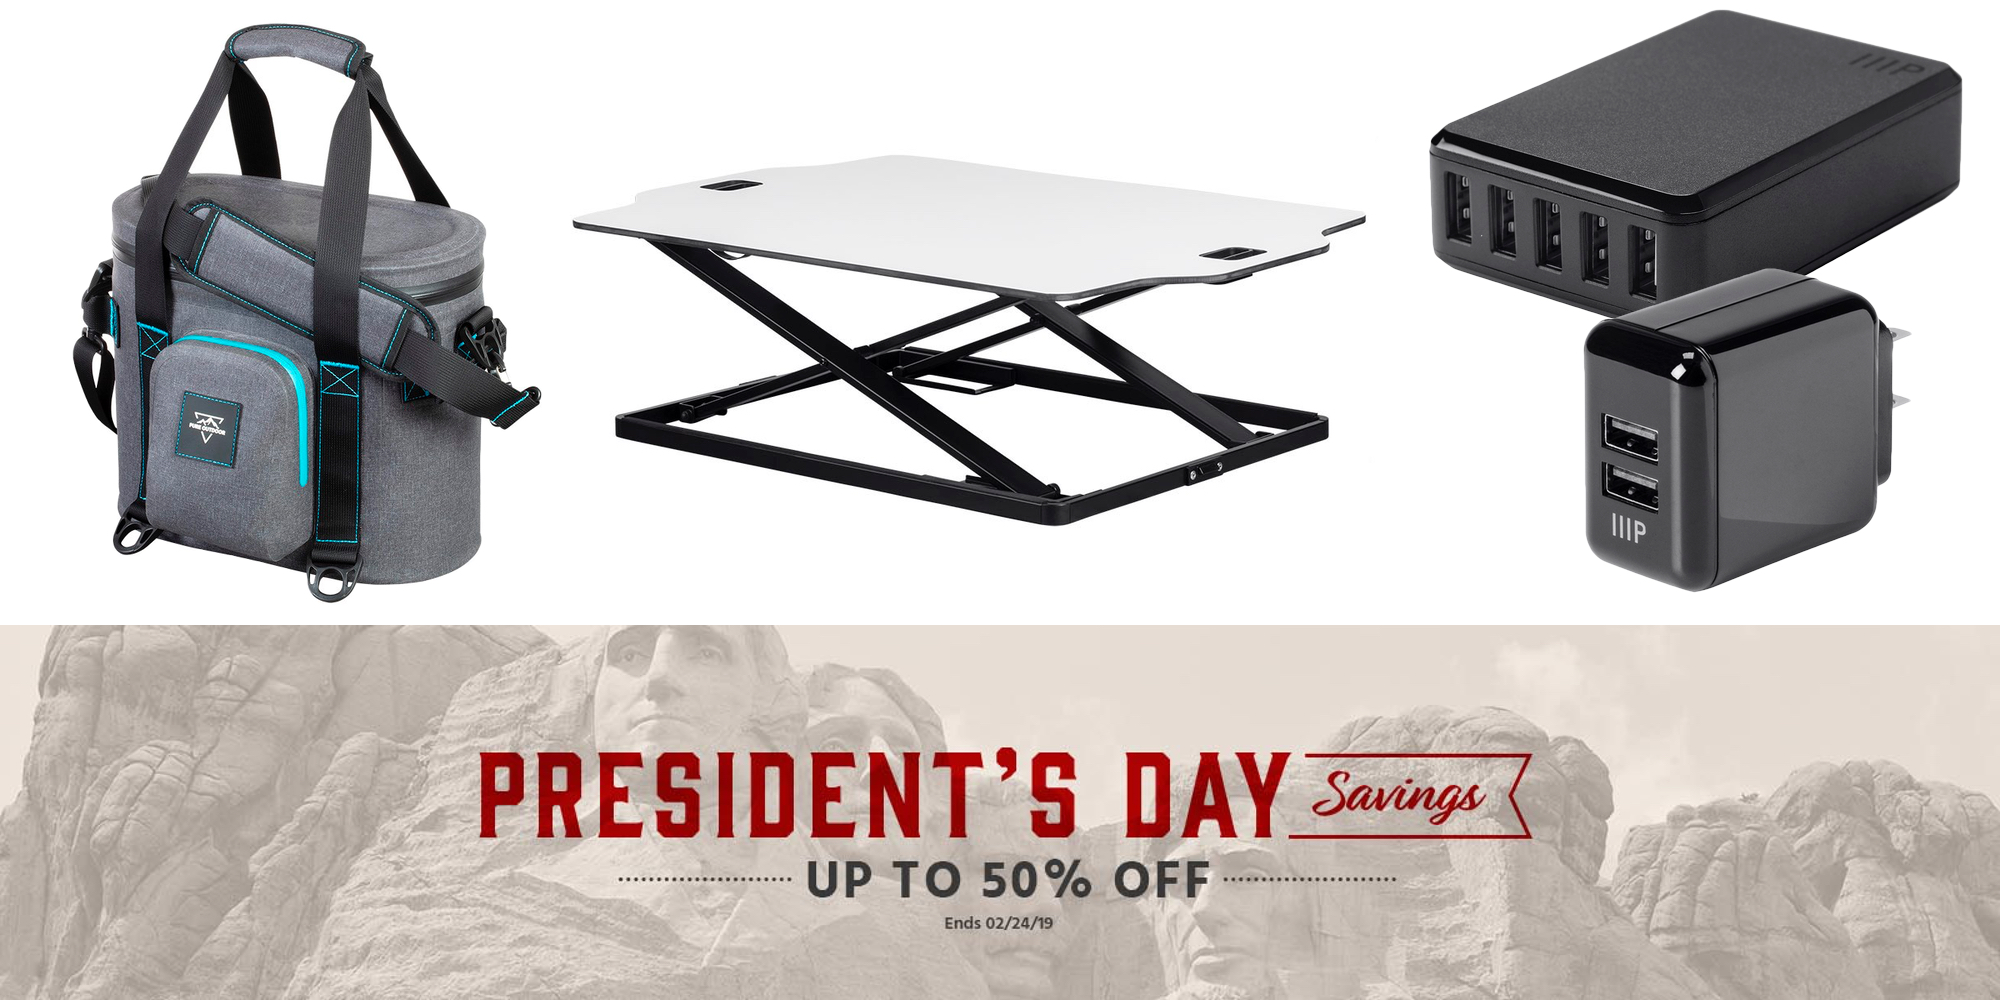 Monoprice Presidents' Day sale takes up to 50% off audio gear, desk accessories, more from $3